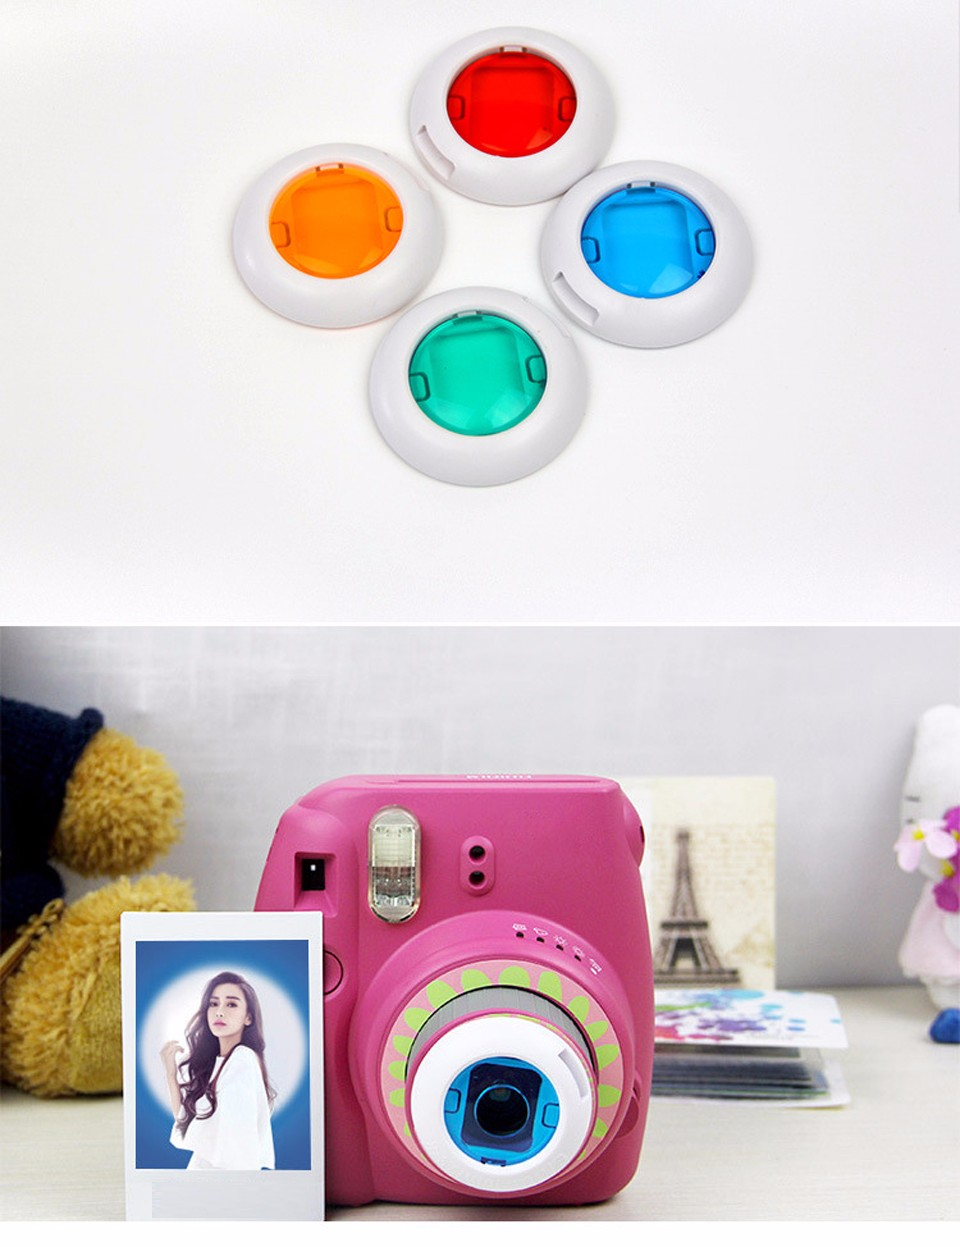 6 In 1 Colorful Filter For Fujifilm Instax Mini 8 7S Magic Lens Set Round Square Heart Shaped Instant Film Camera Accessories 7